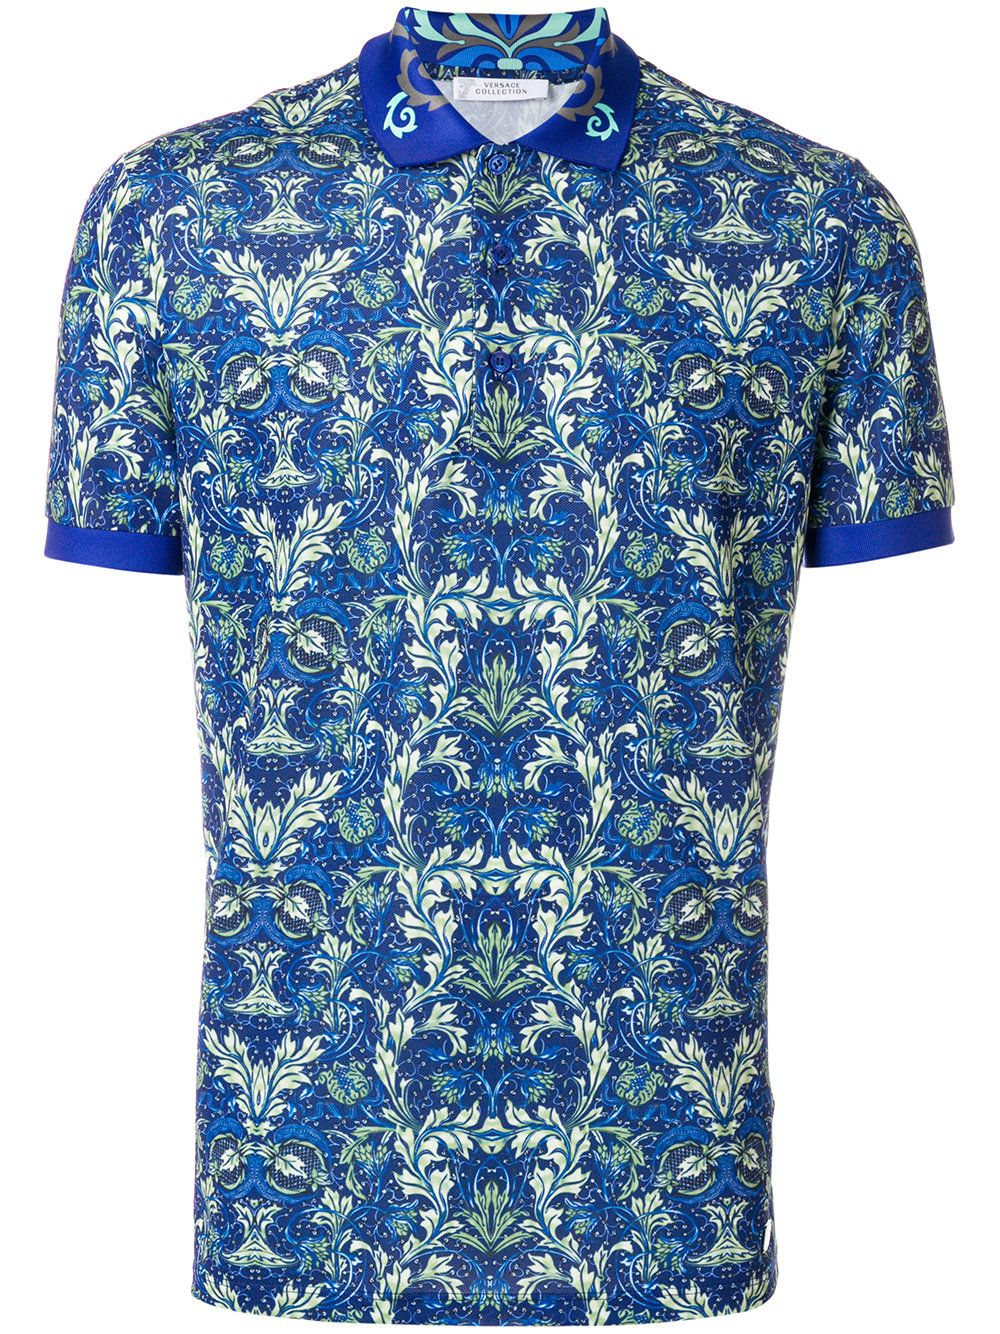 667042c9 VERSACE BAROQUE PRINT POLO SHIRT. #versace #cloth # | Versace Men ...